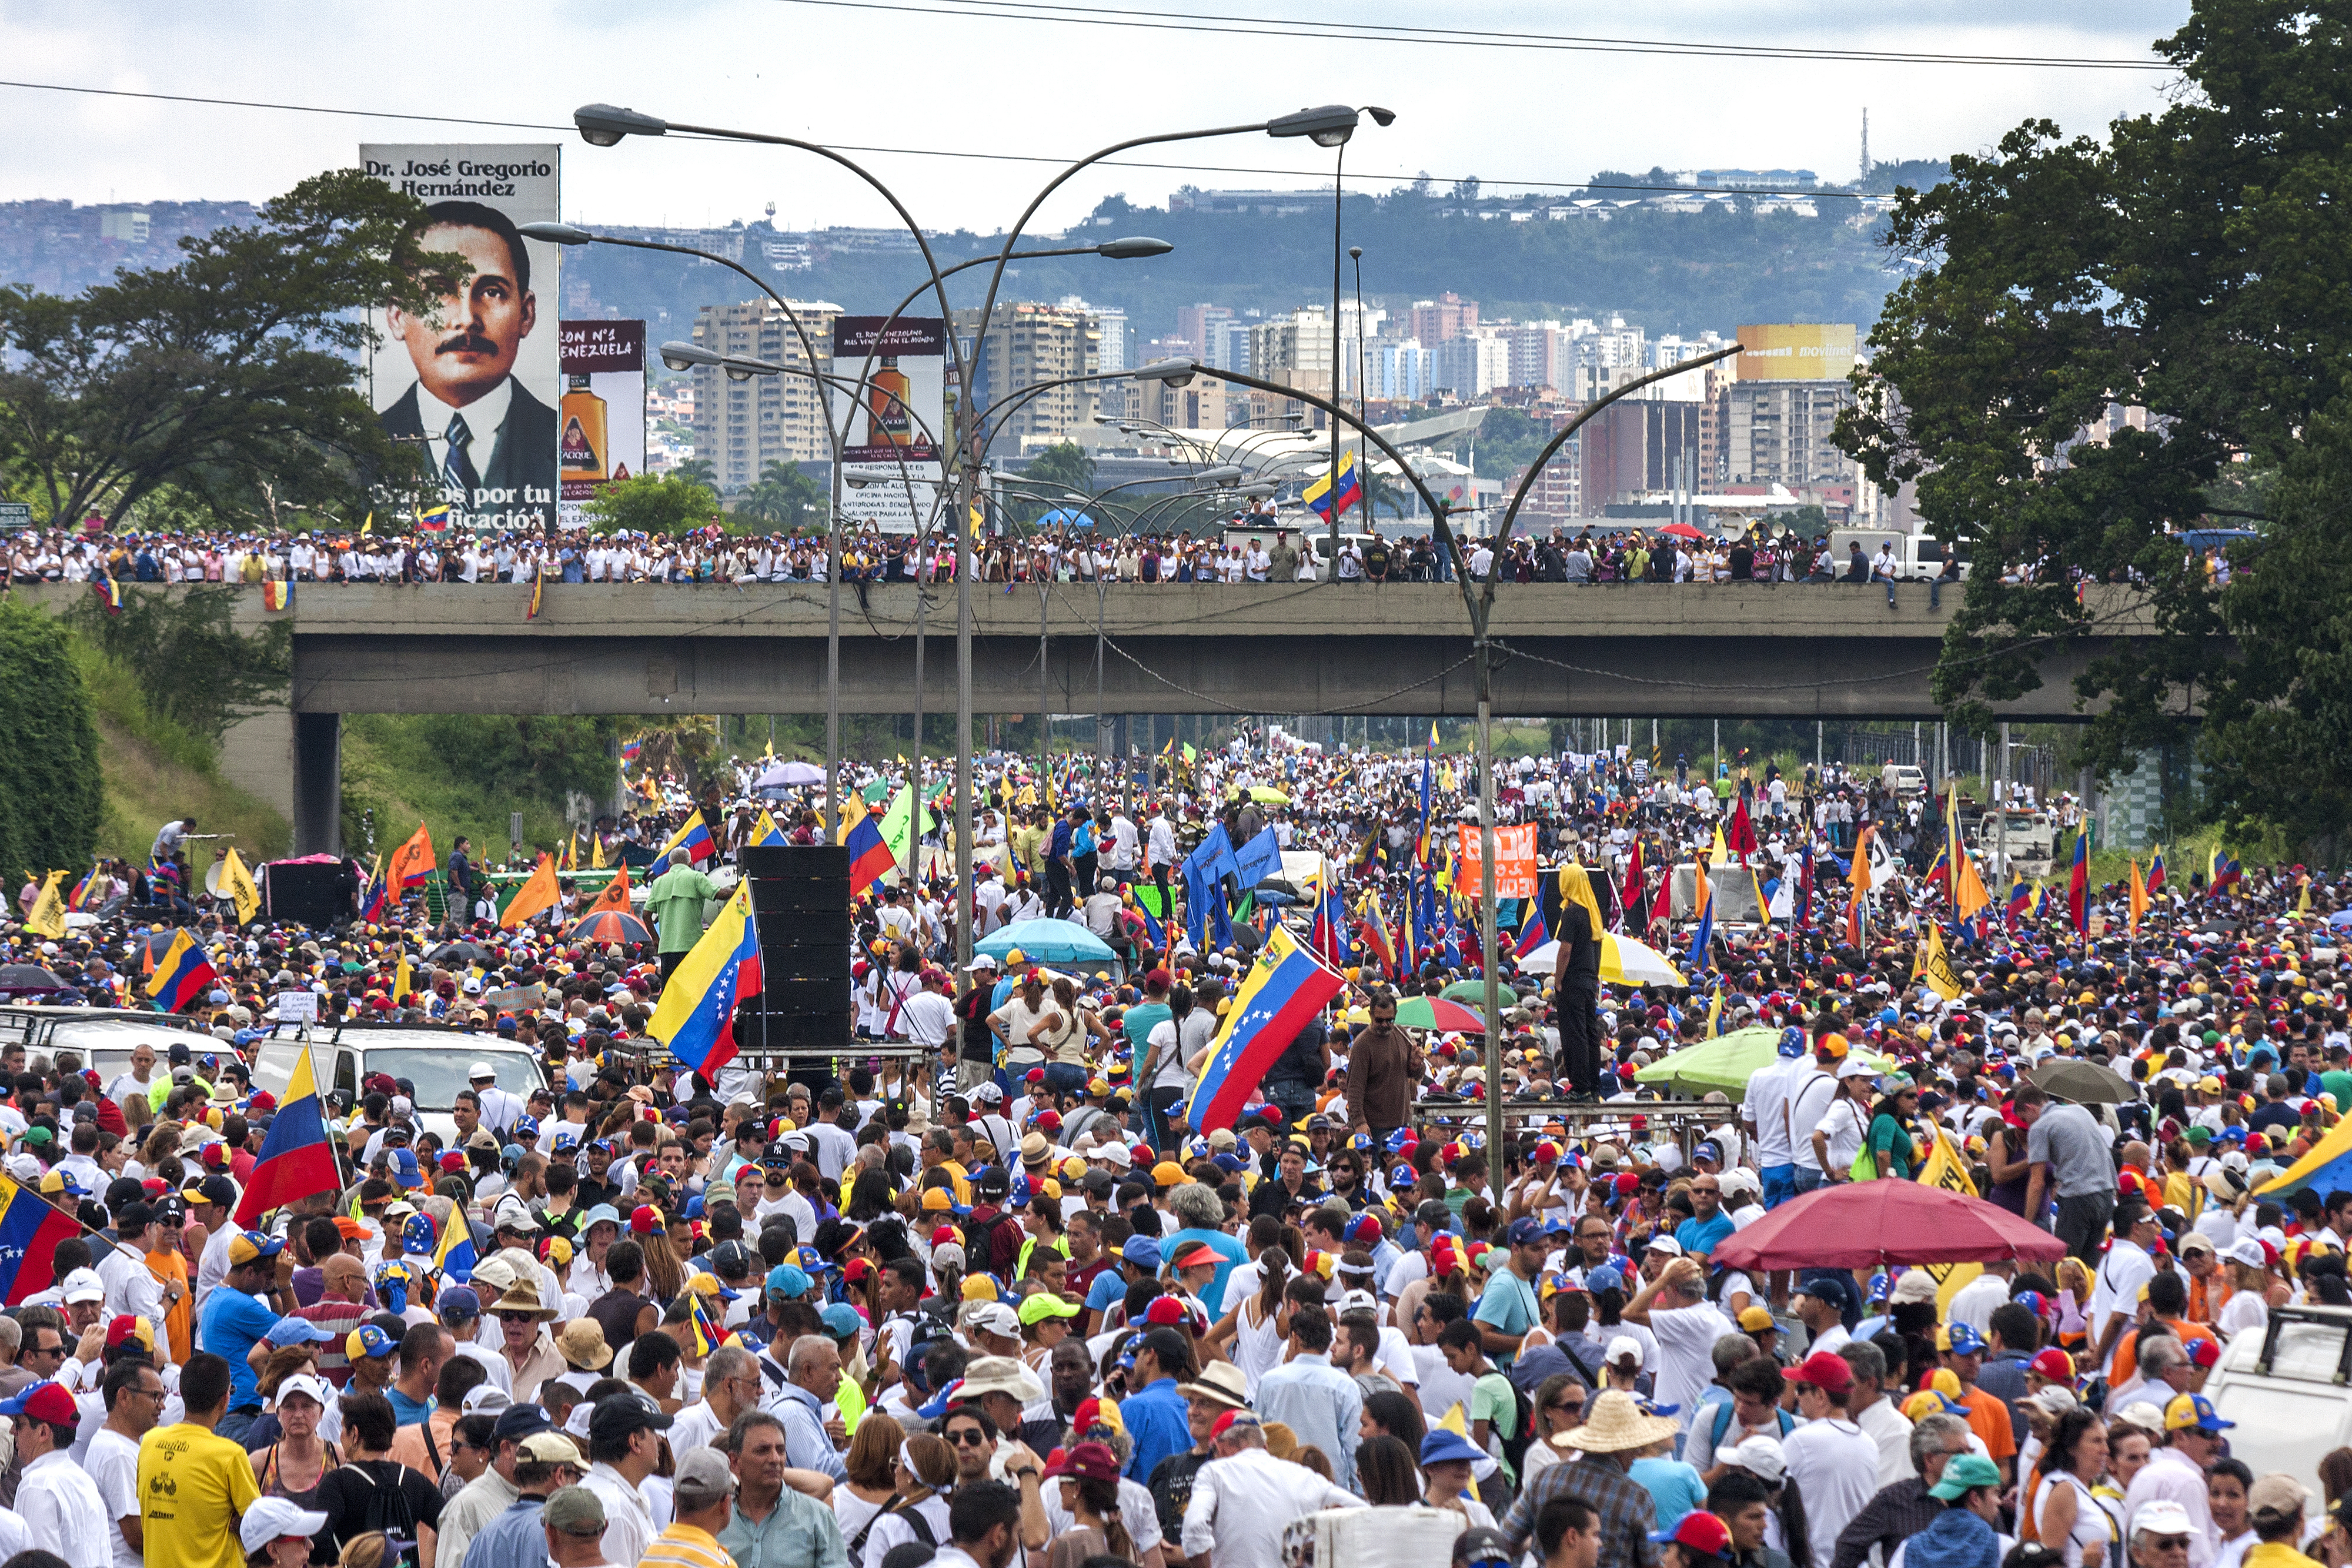 Demonstrators concentration against referendum cancellation. Caracas, Venezuela - October 26, 2016. Demonstrators concentrated protesting in Francisco Fajardo highway in Caracas against the cancellation of a constitutional referendum to revoke Venezuelan president in charge.